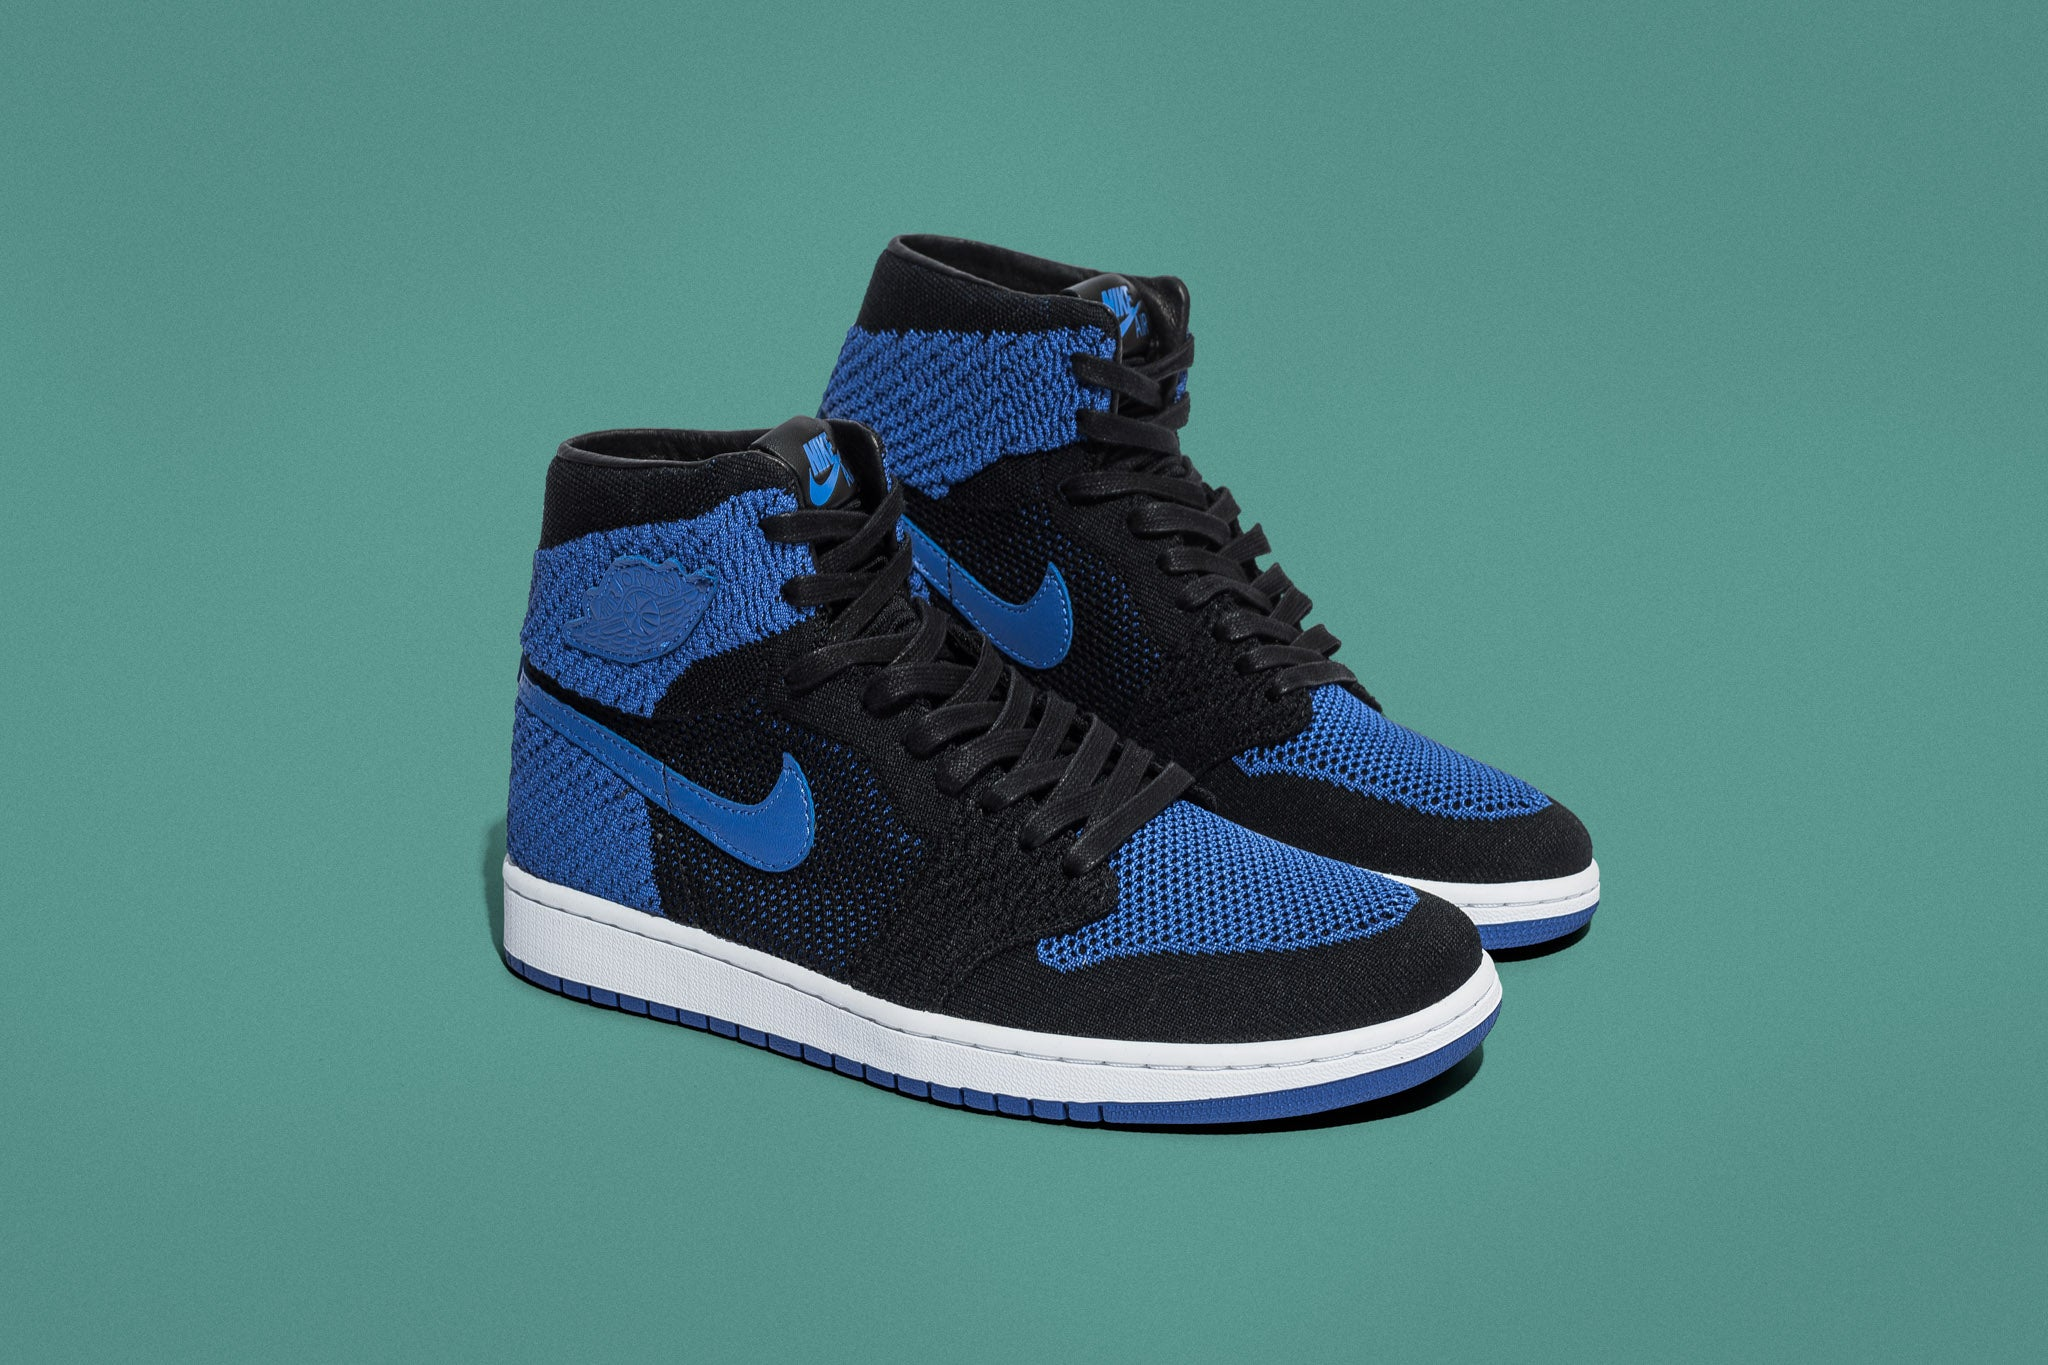 """7f06139f665 The 1985 fan favourite returns with a revamped ultra-lightweight upper to  settle the score on the pavement. The Air Jordan 1 Retro Flyknit """"Royal""""  dresses ..."""